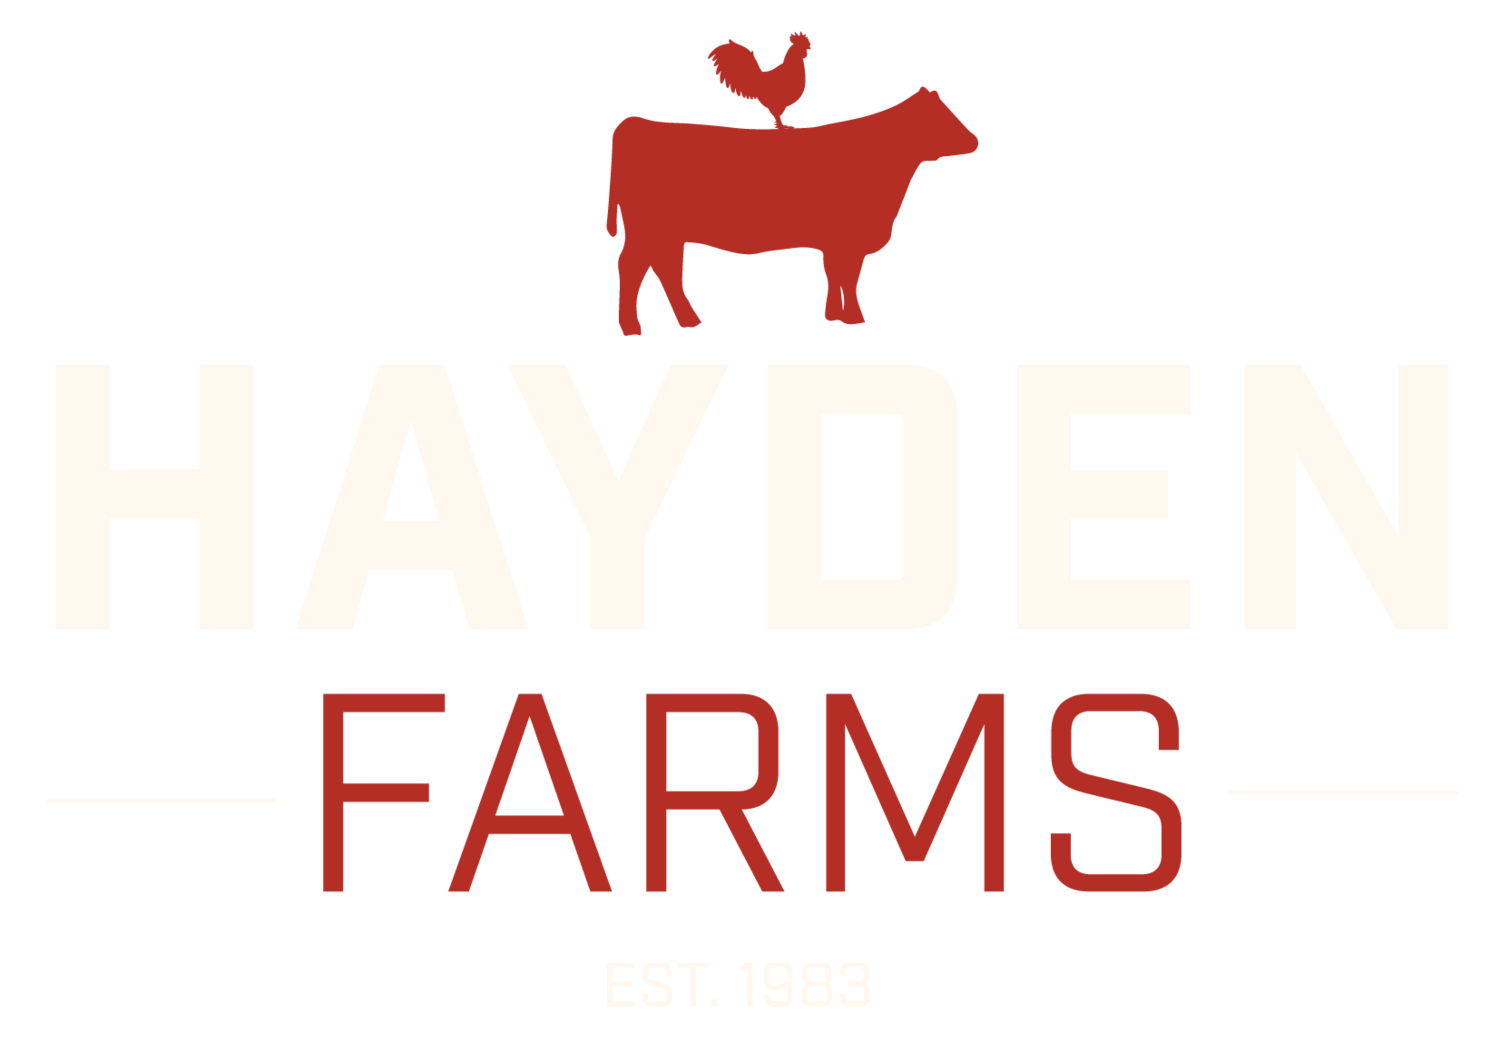 Hayden Farms